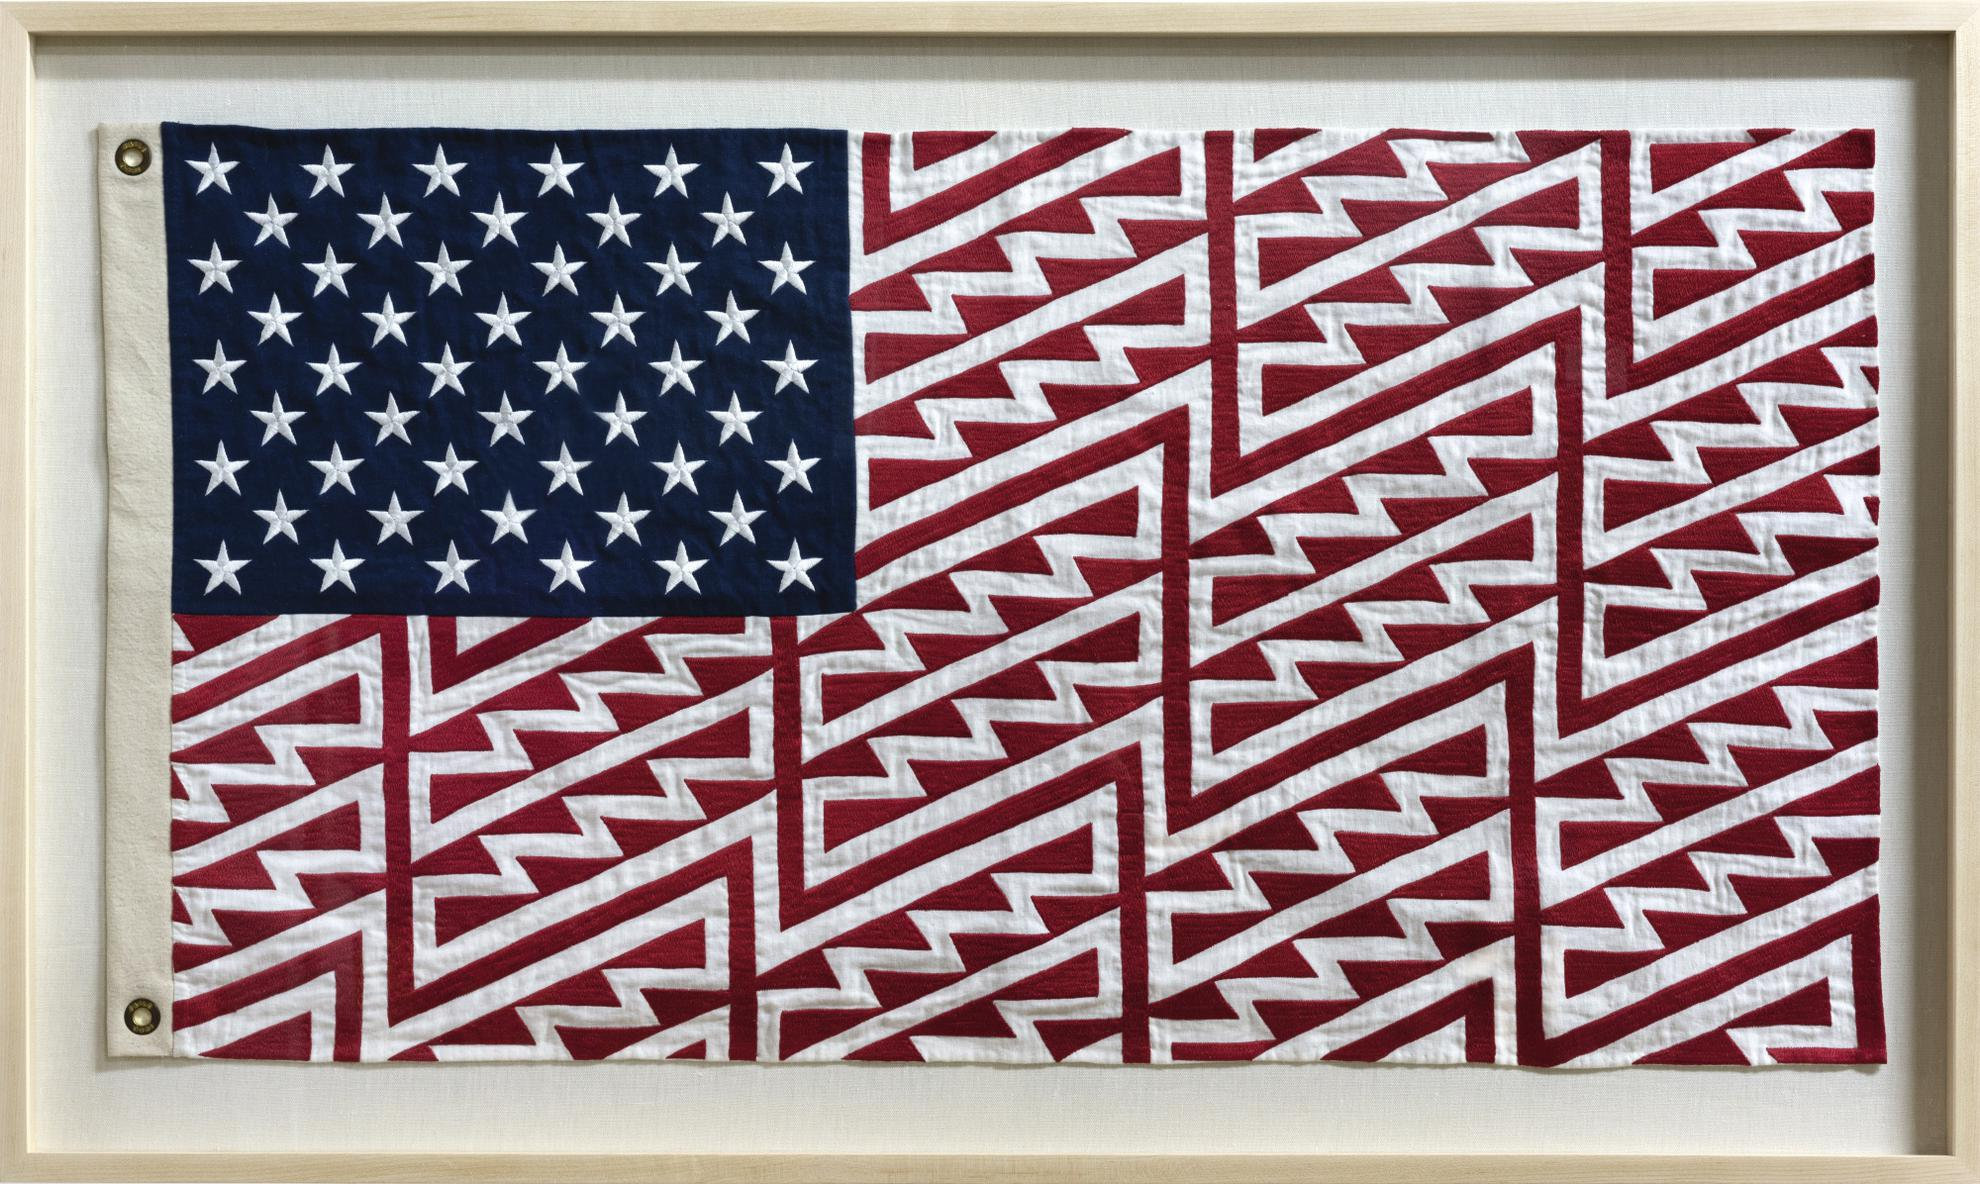 Faile-Faile Flag, Star Spangled Shadows-2016